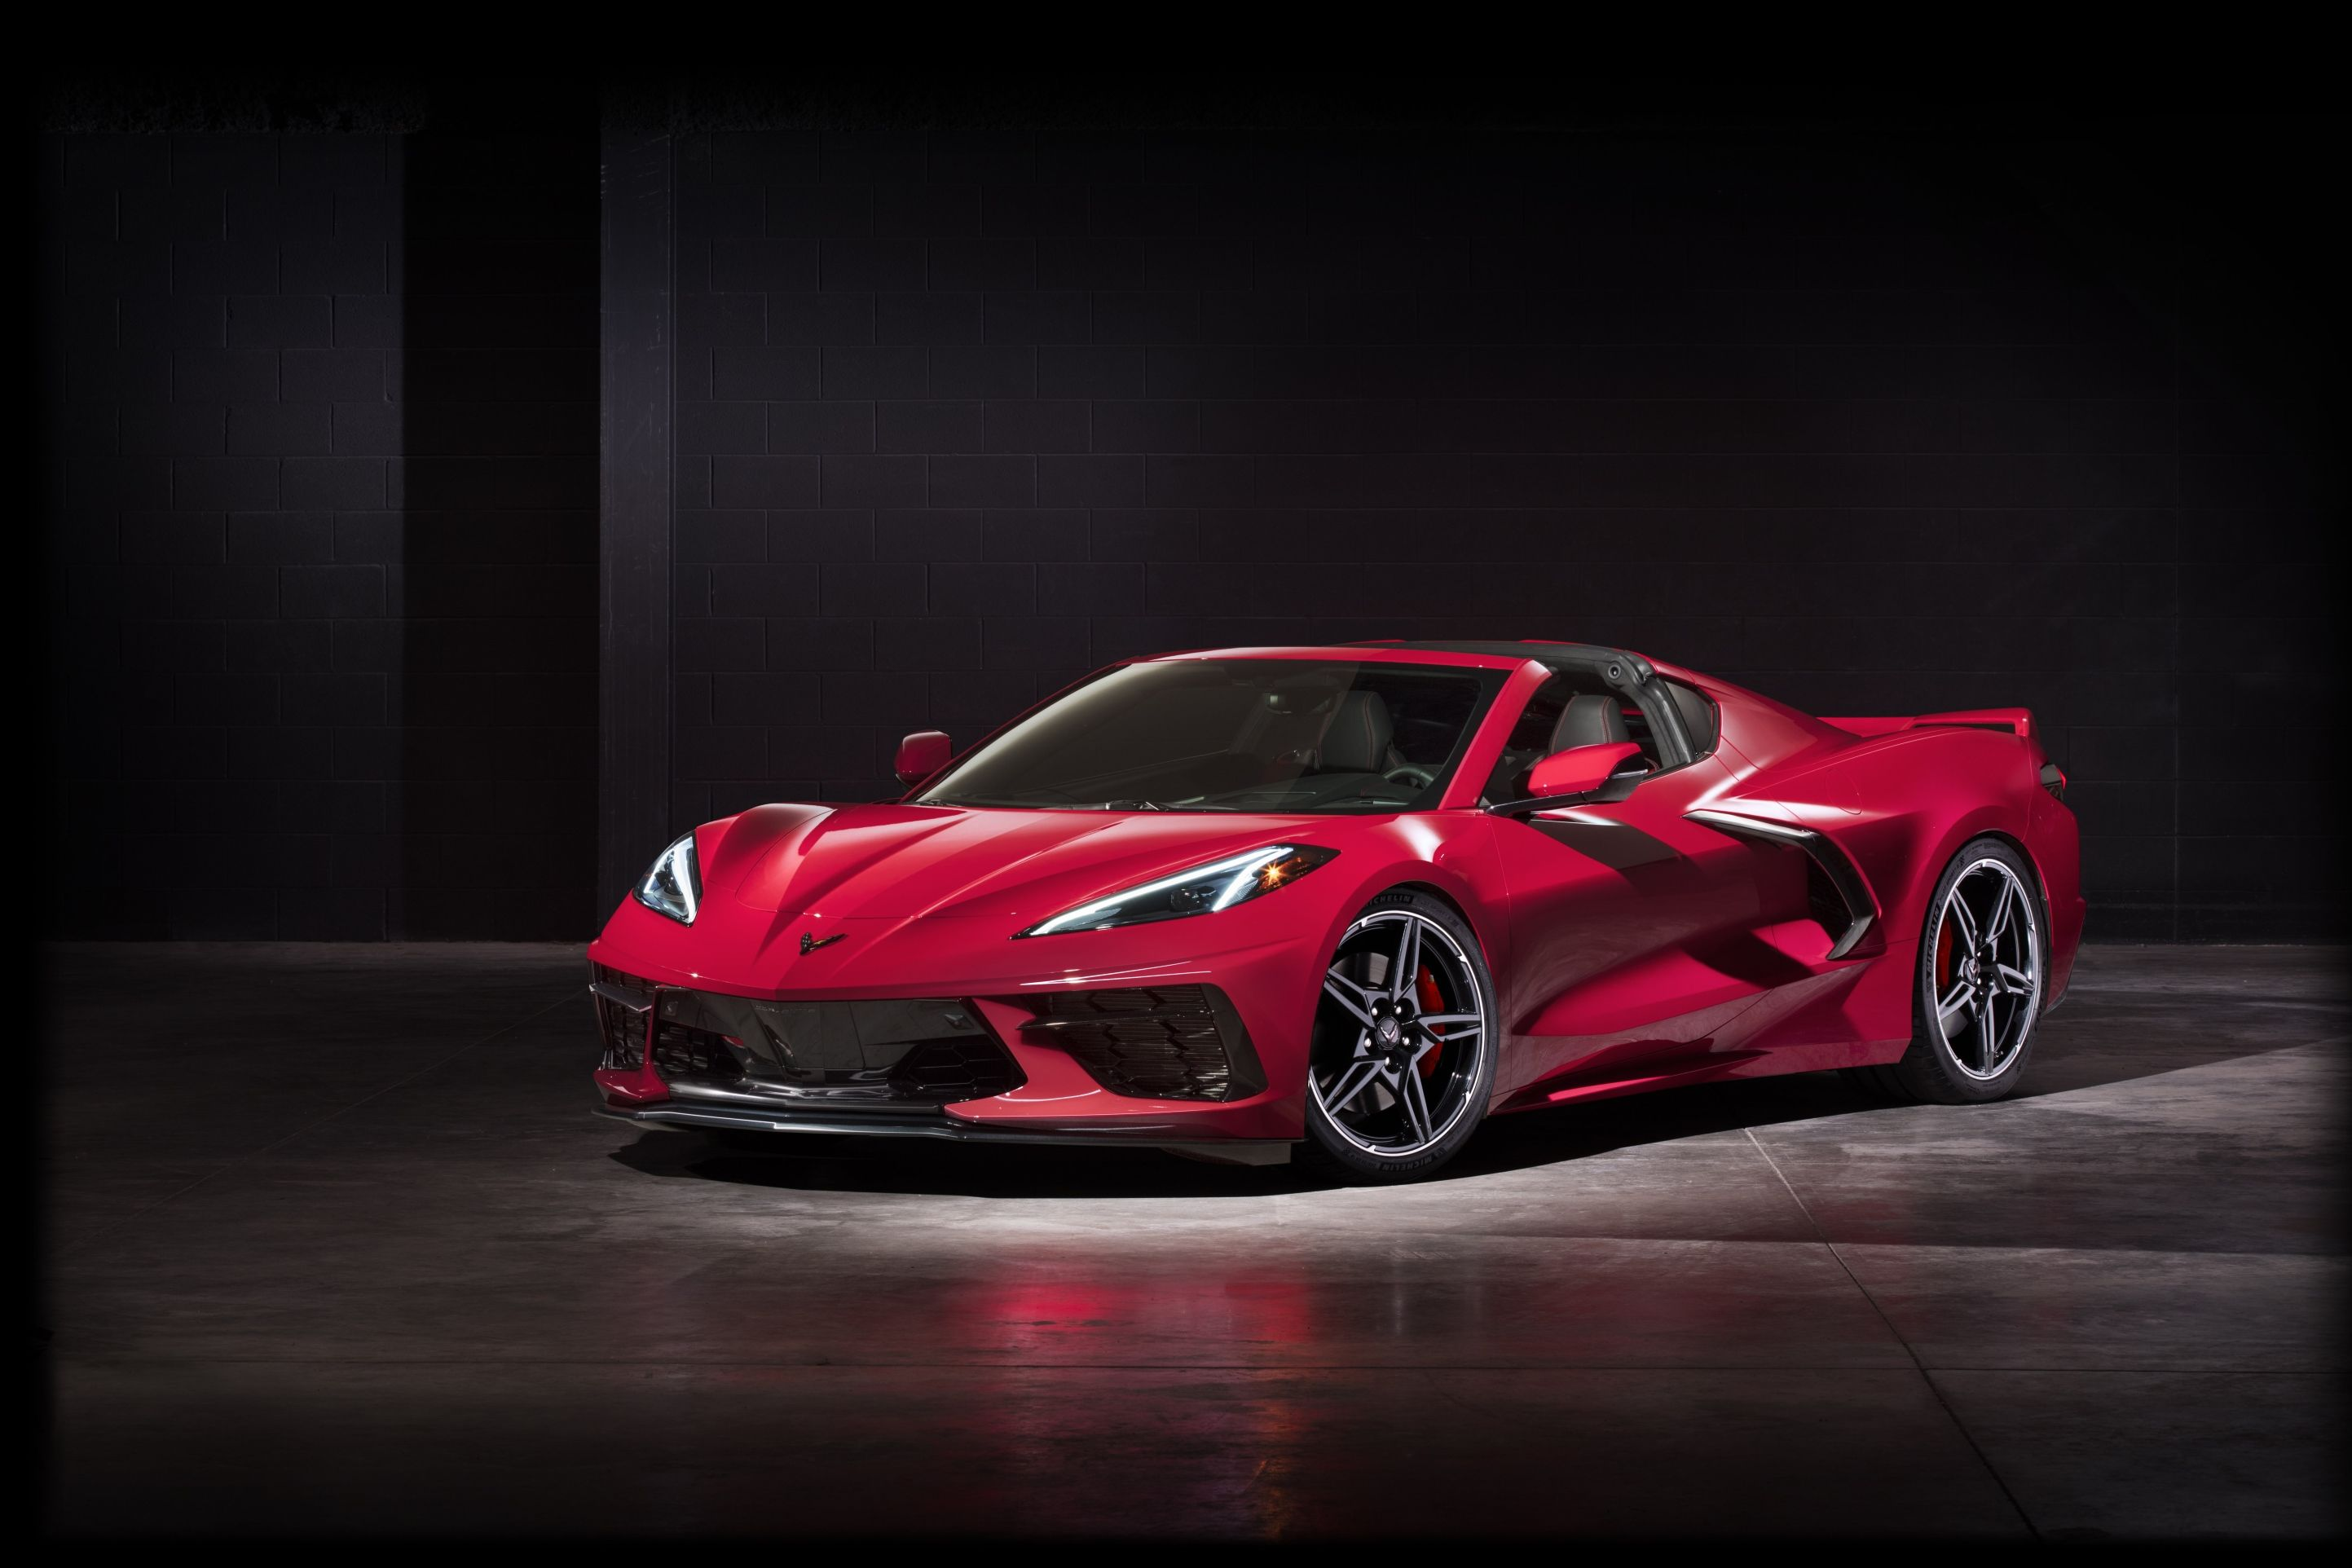 42 The Best 2020 Chevrolet Corvette C8 Photos